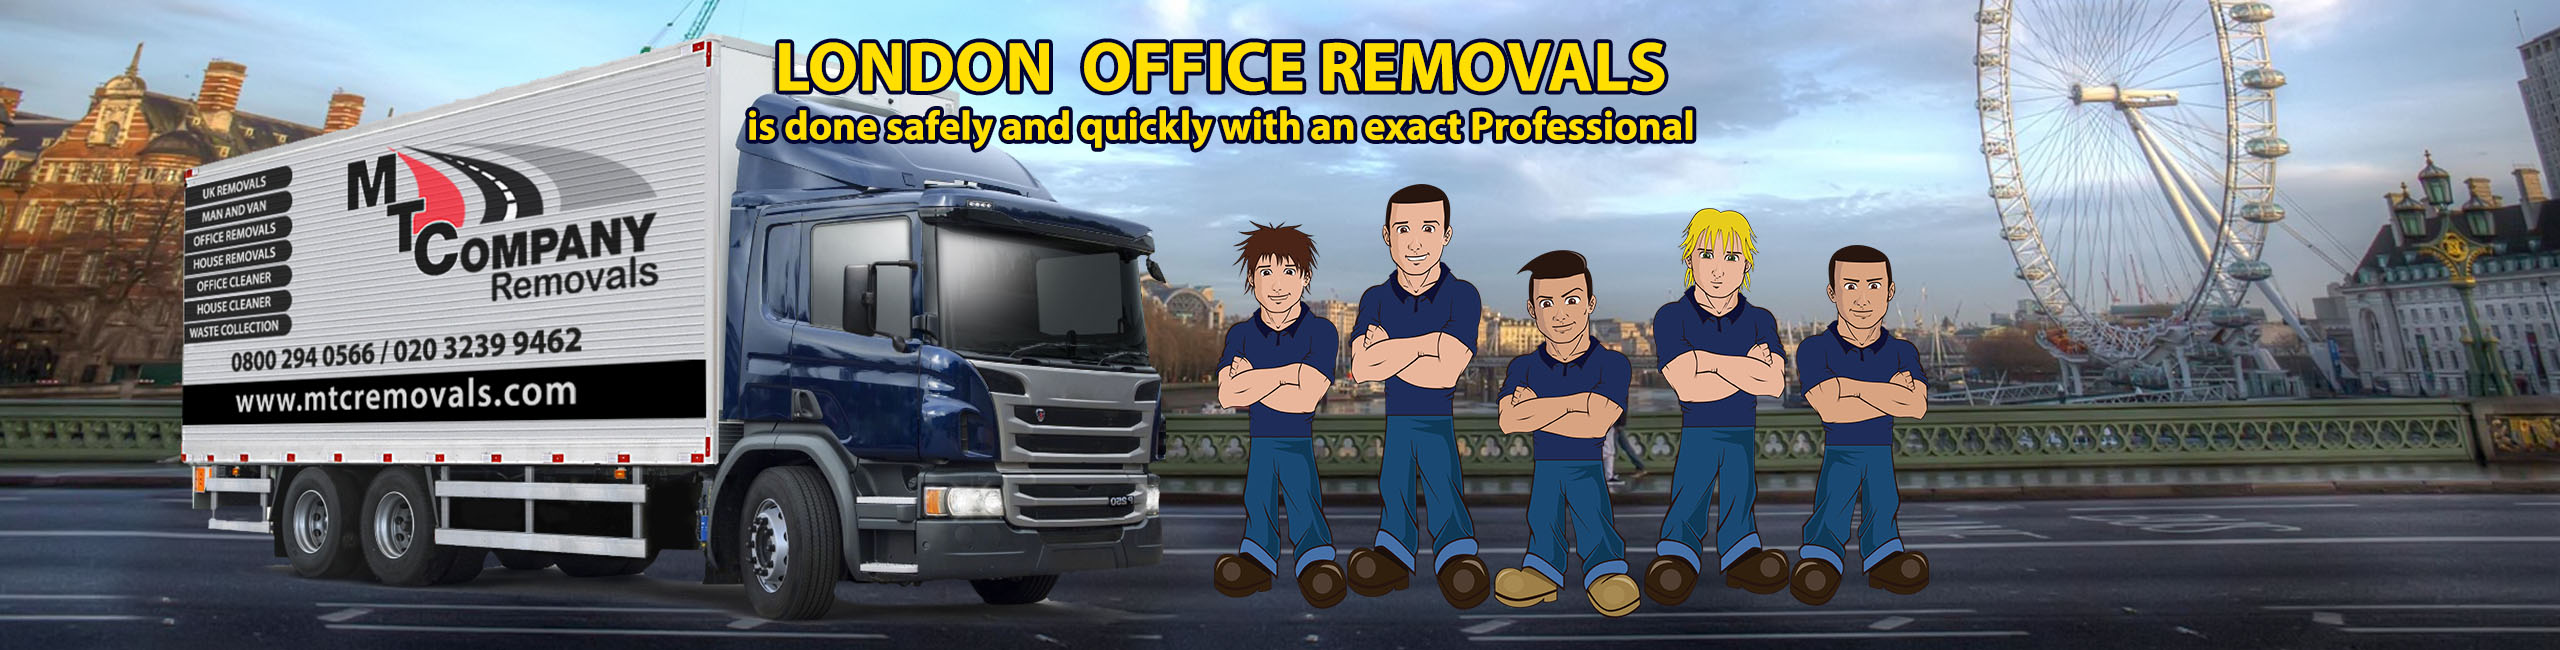 Professional offices relocation company